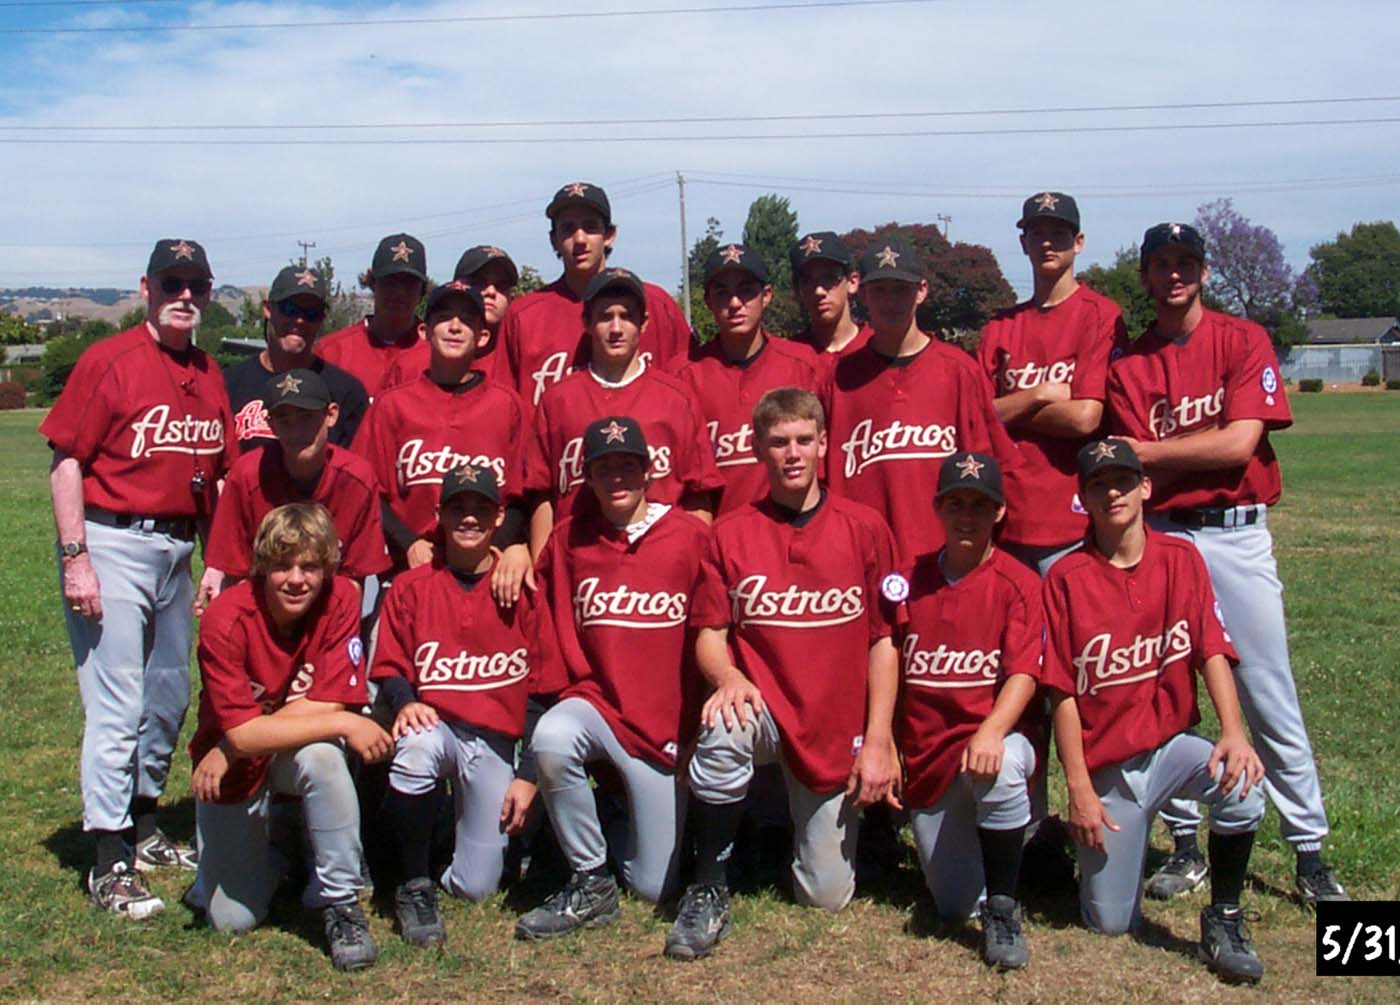 Castro Valley Astros Baseball Club